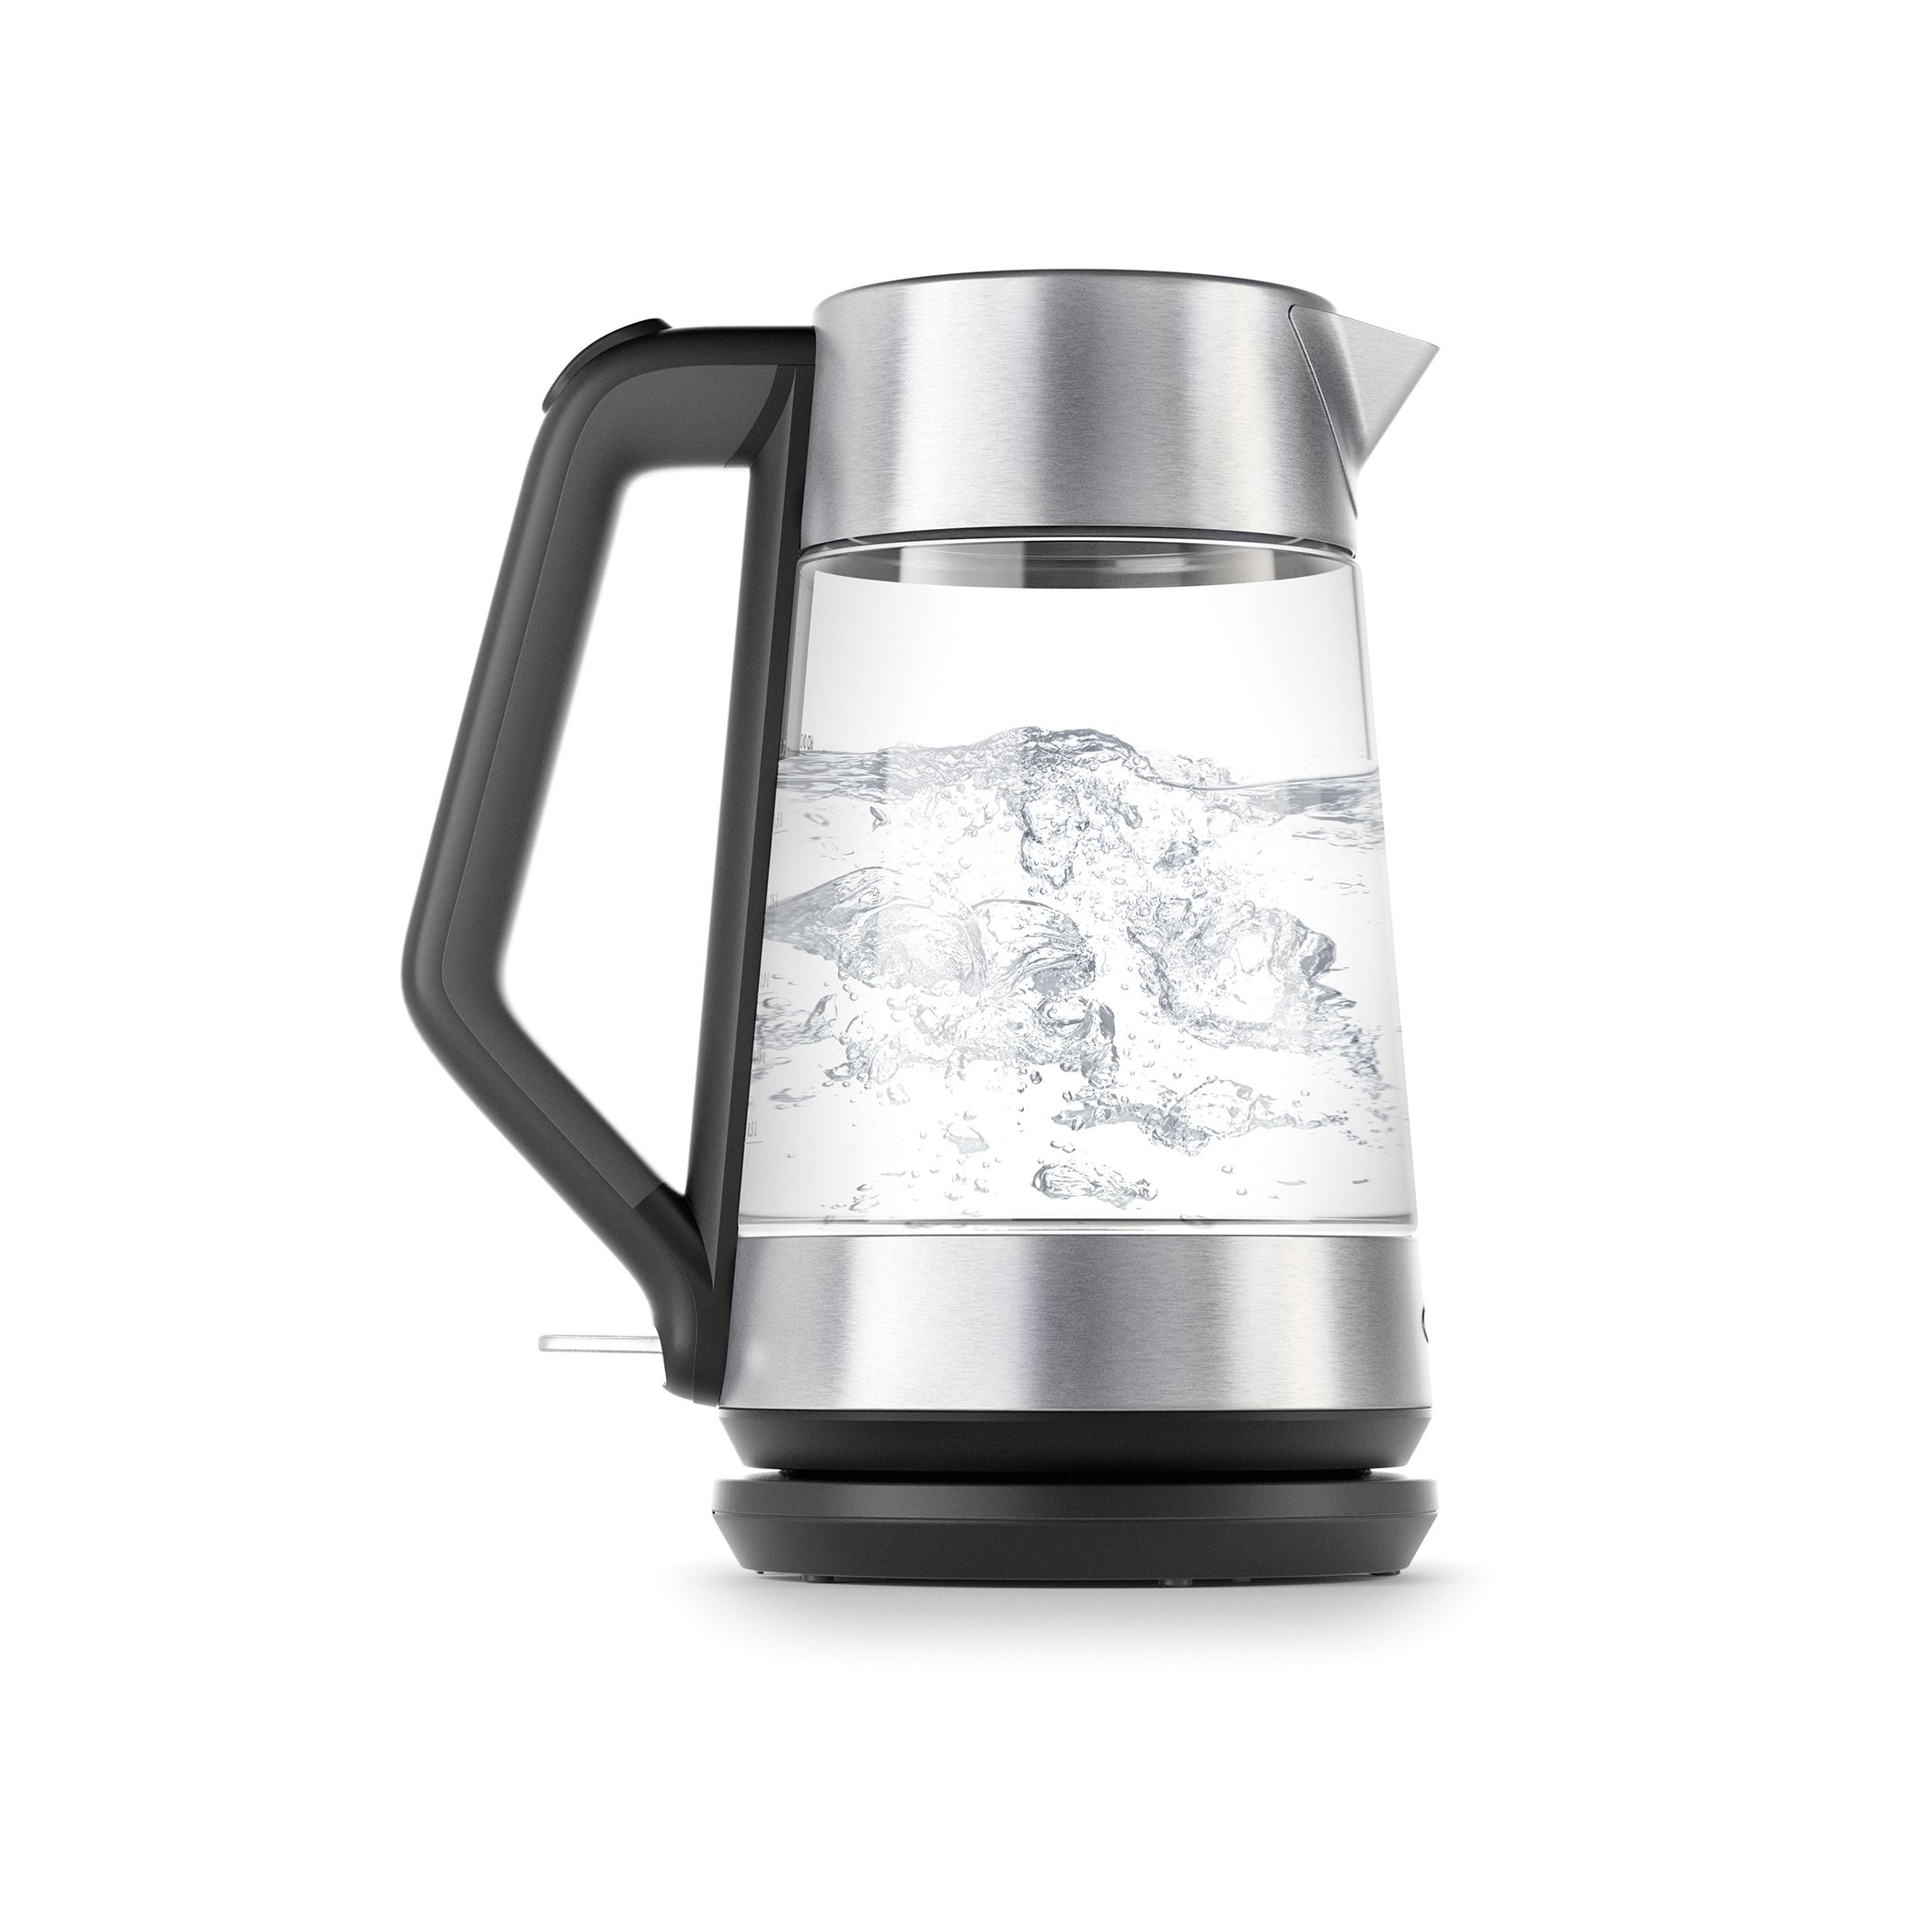 OXO BREW Cordless Glass Electric Kettle